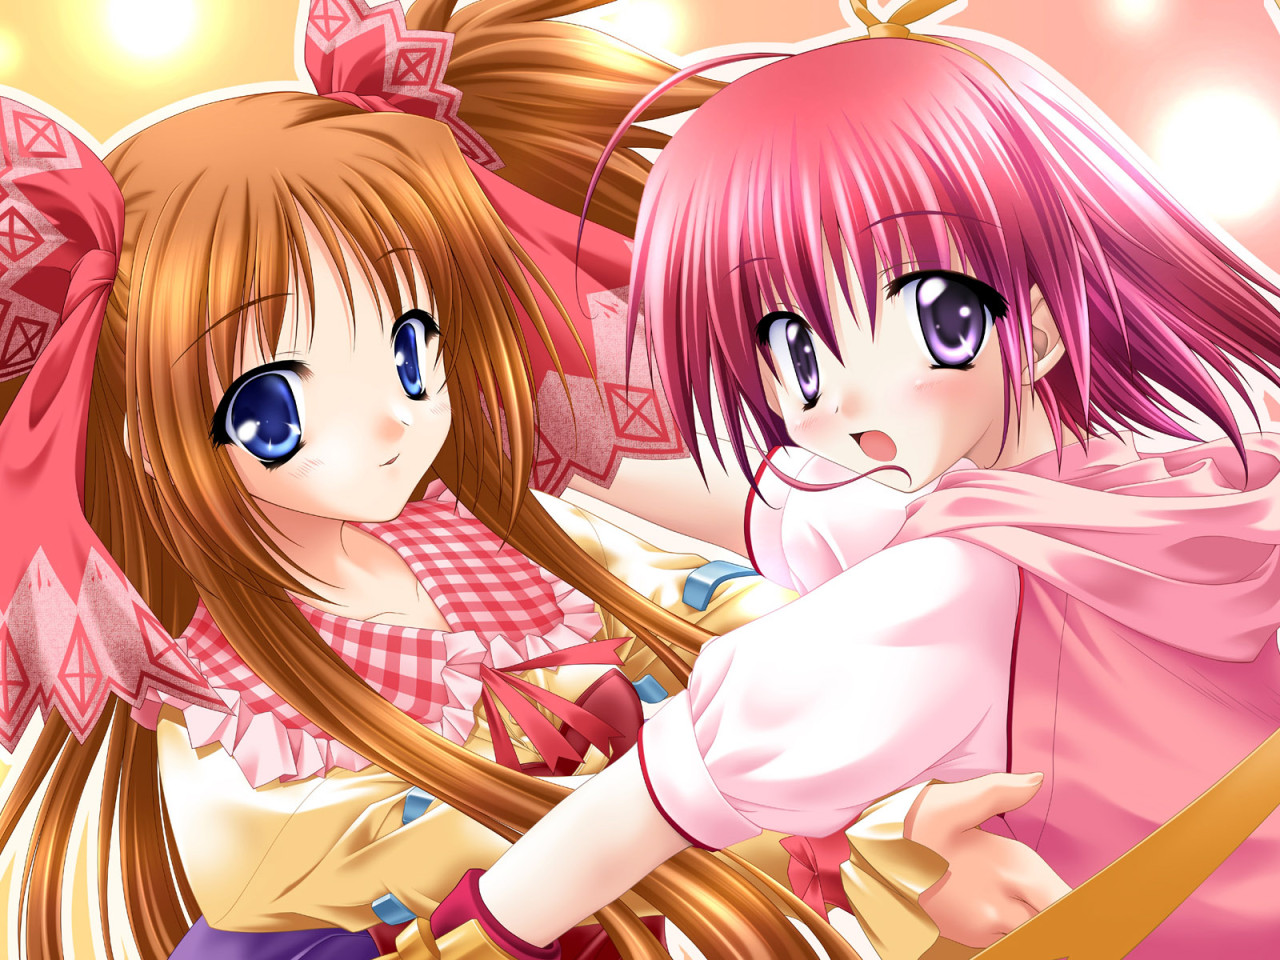 Anime Characters Images : Anime female characters images girls hd wallpaper